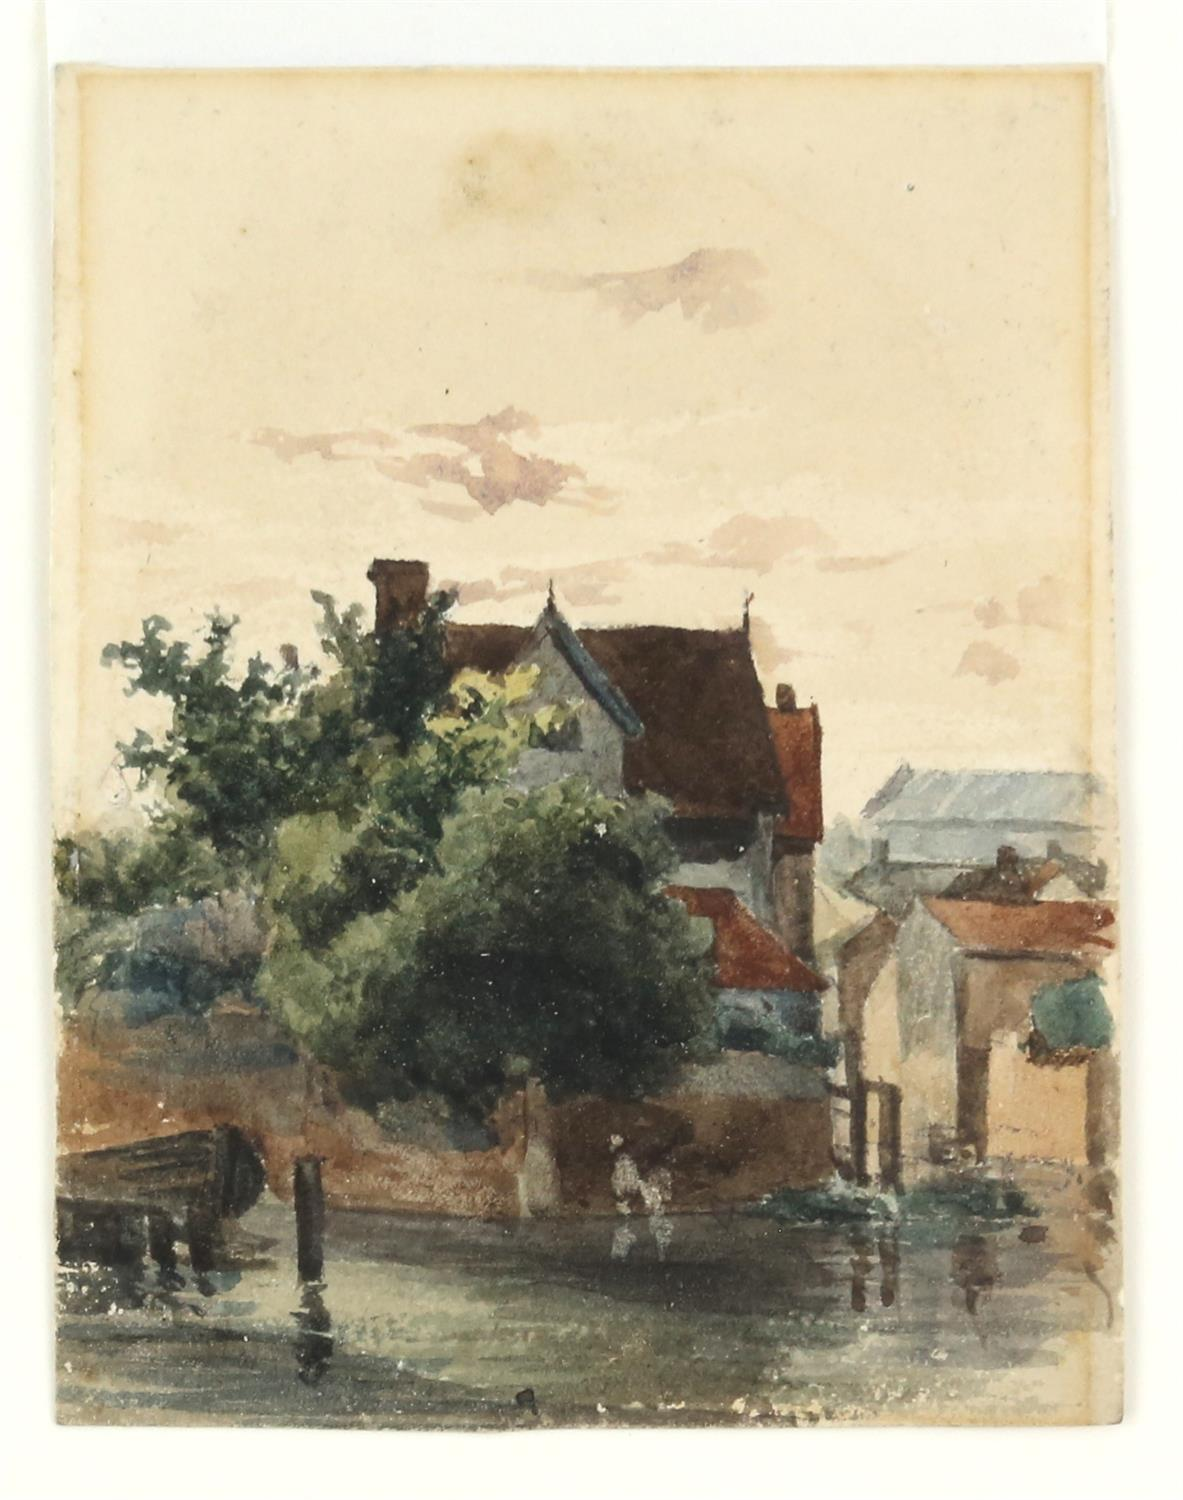 James Stark (British, 1794-1859), 'New Mills, Norwich', 11cm x 8cm, and 'Whitlingham, near Norwich', - Image 2 of 2